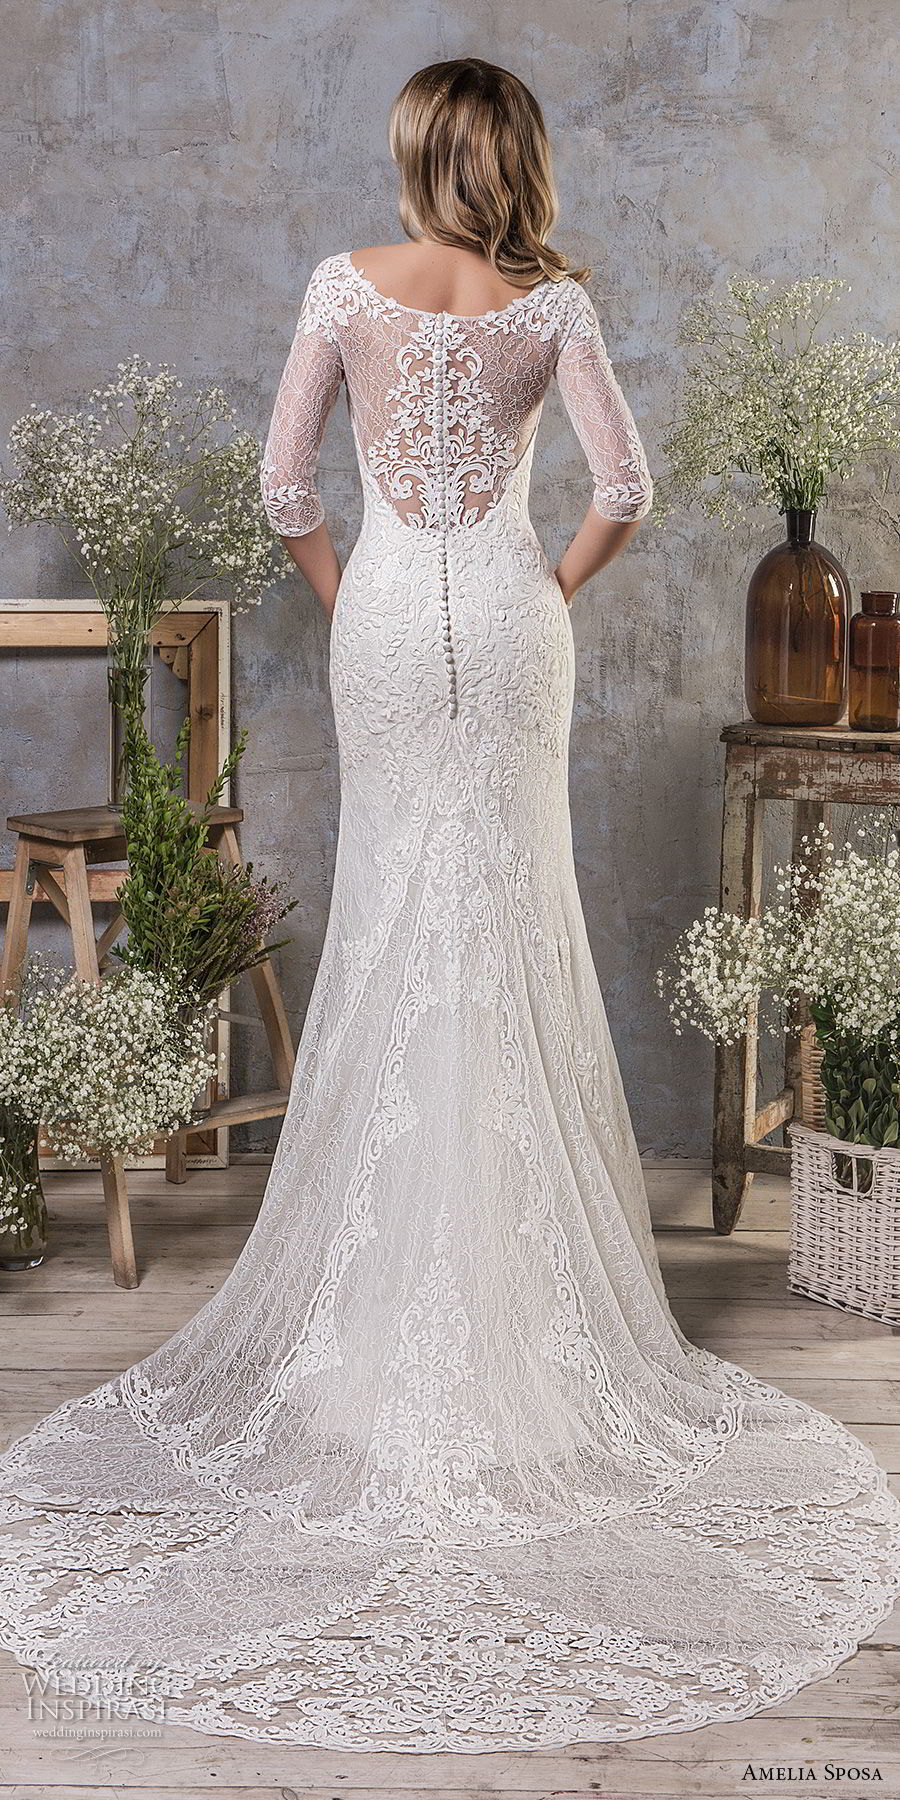 amelia sposa fall 2018 bridal half sleeves sweetheart neckline heavily embellished bodice elegant drop waist a line wedding dress covered lace back medium train (4) bv